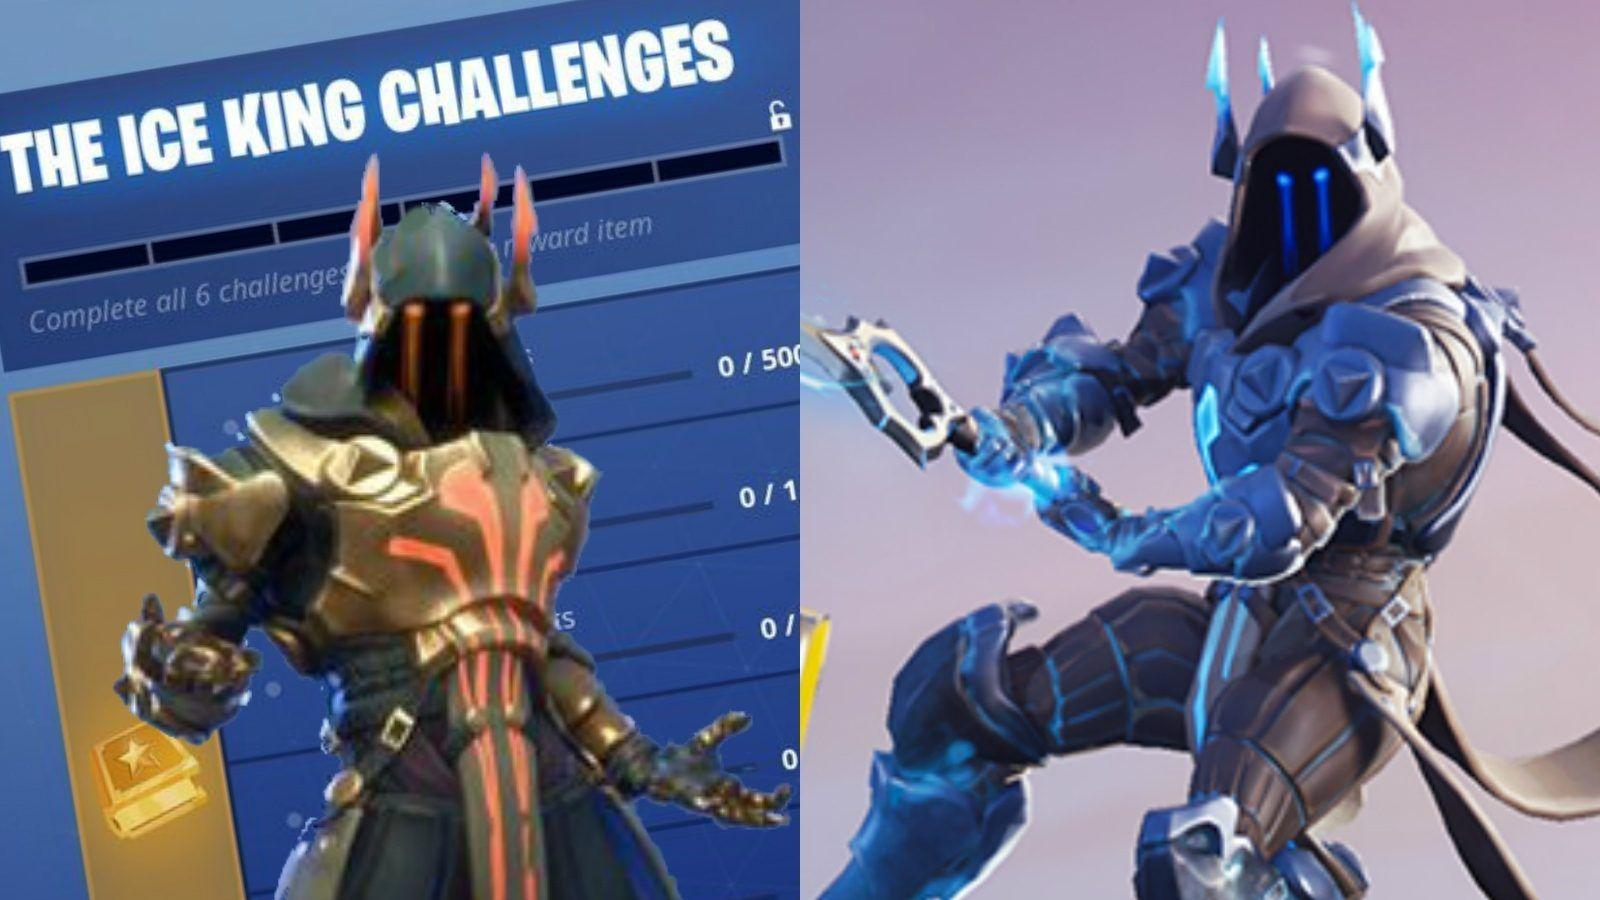 Fortnite Ice King Challenges: How to unlock tier 100 Ice King skin